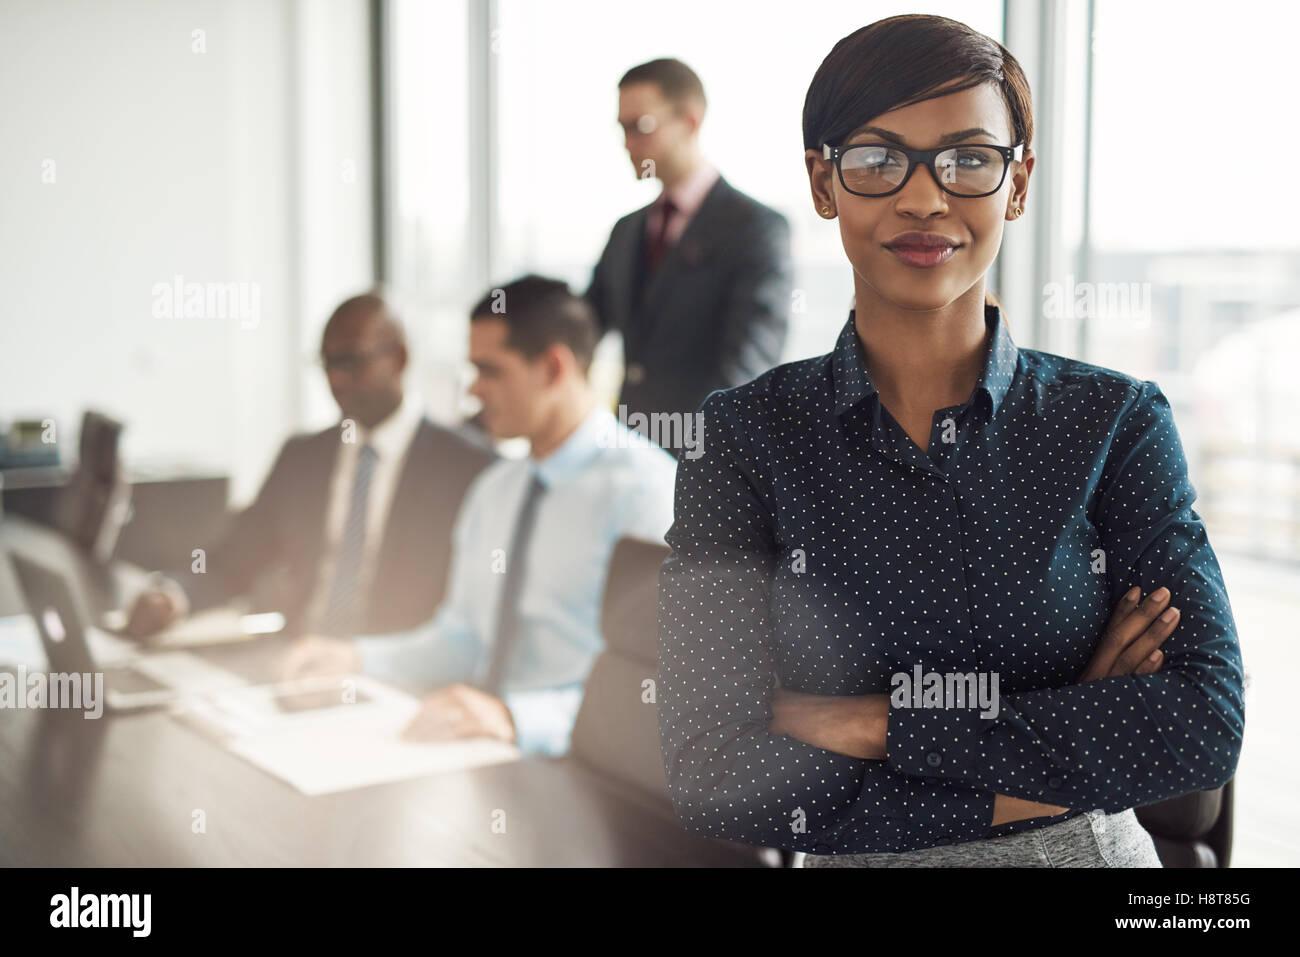 Confident young African businesswoman standing with folded arms smiling at the camera in a boardroom with male colleagues - Stock Image